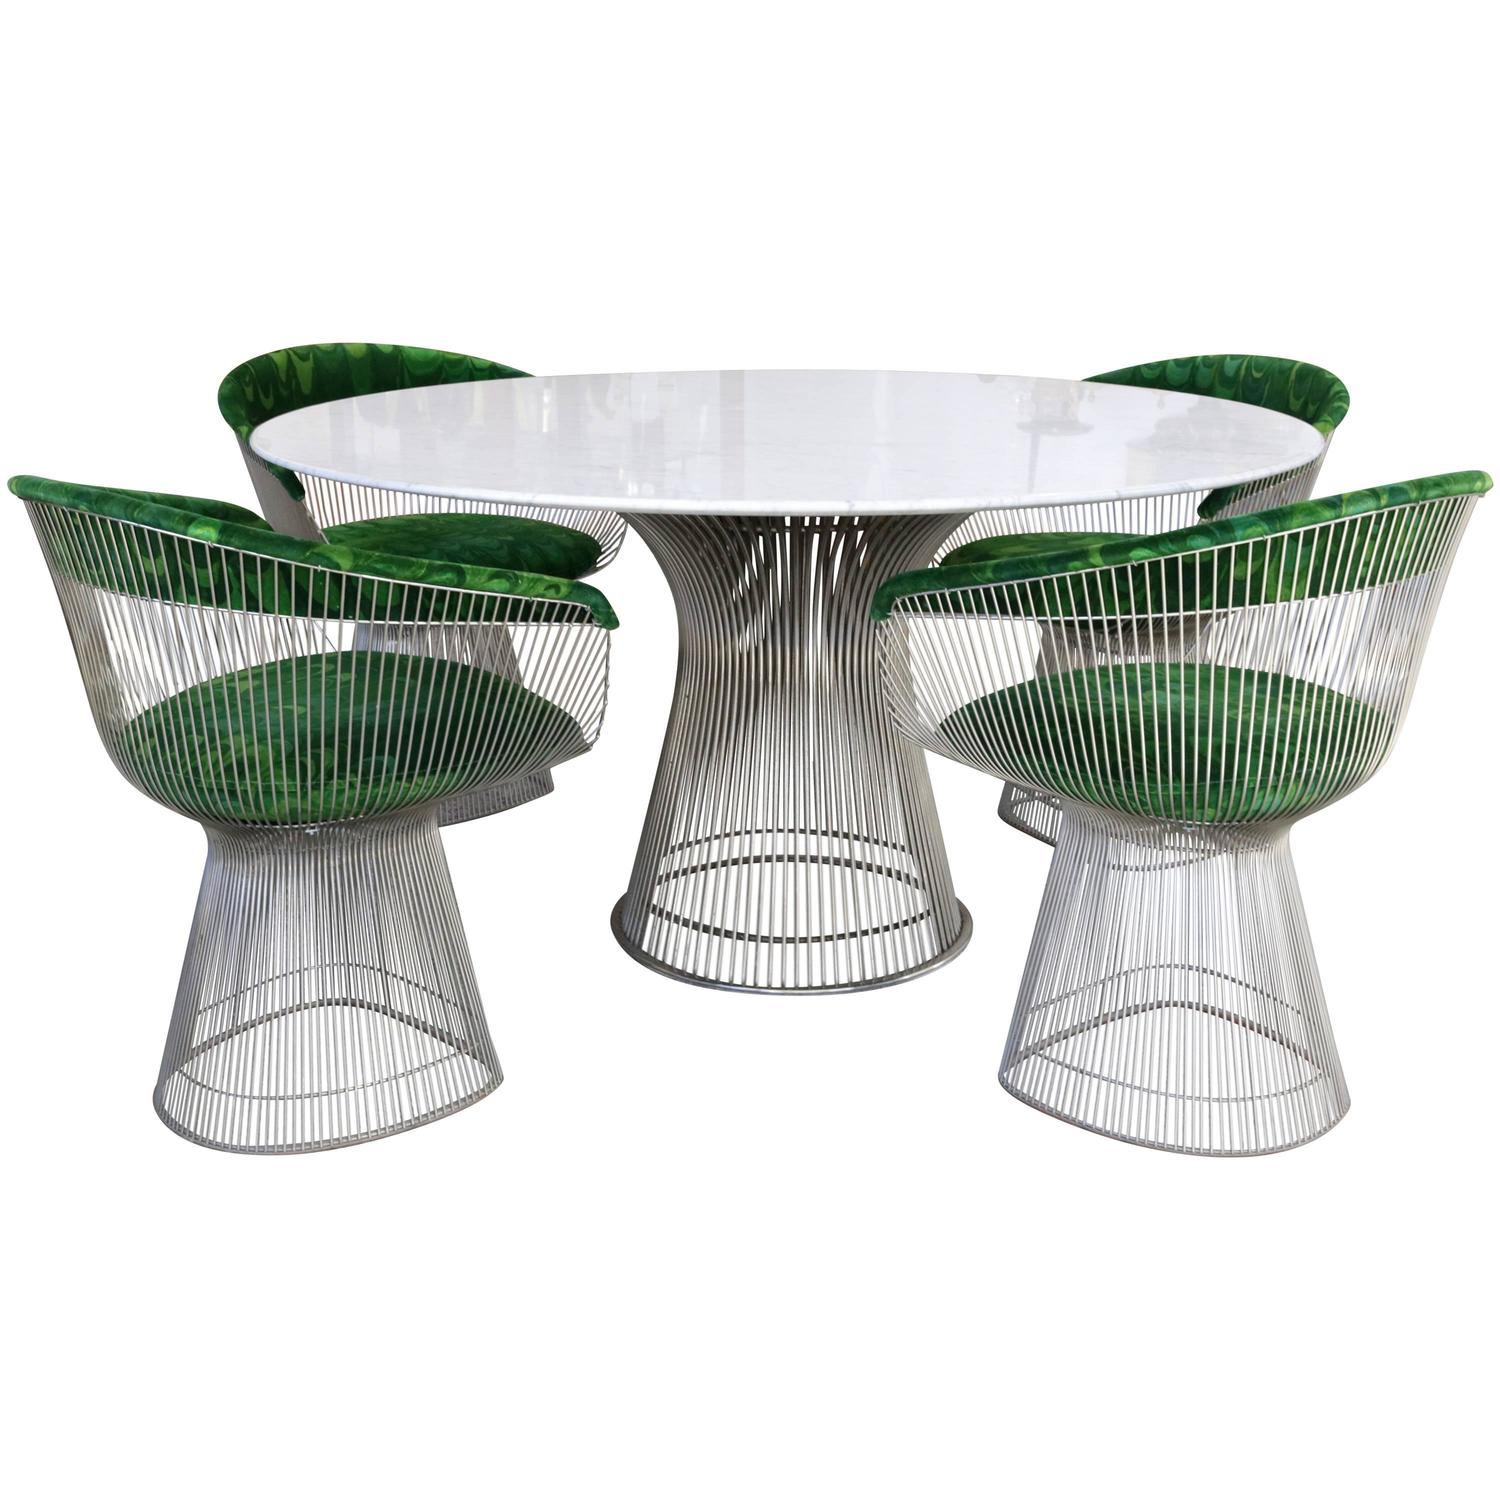 Warren Platner Knoll Marble Table Four Chairs Jack Lenor